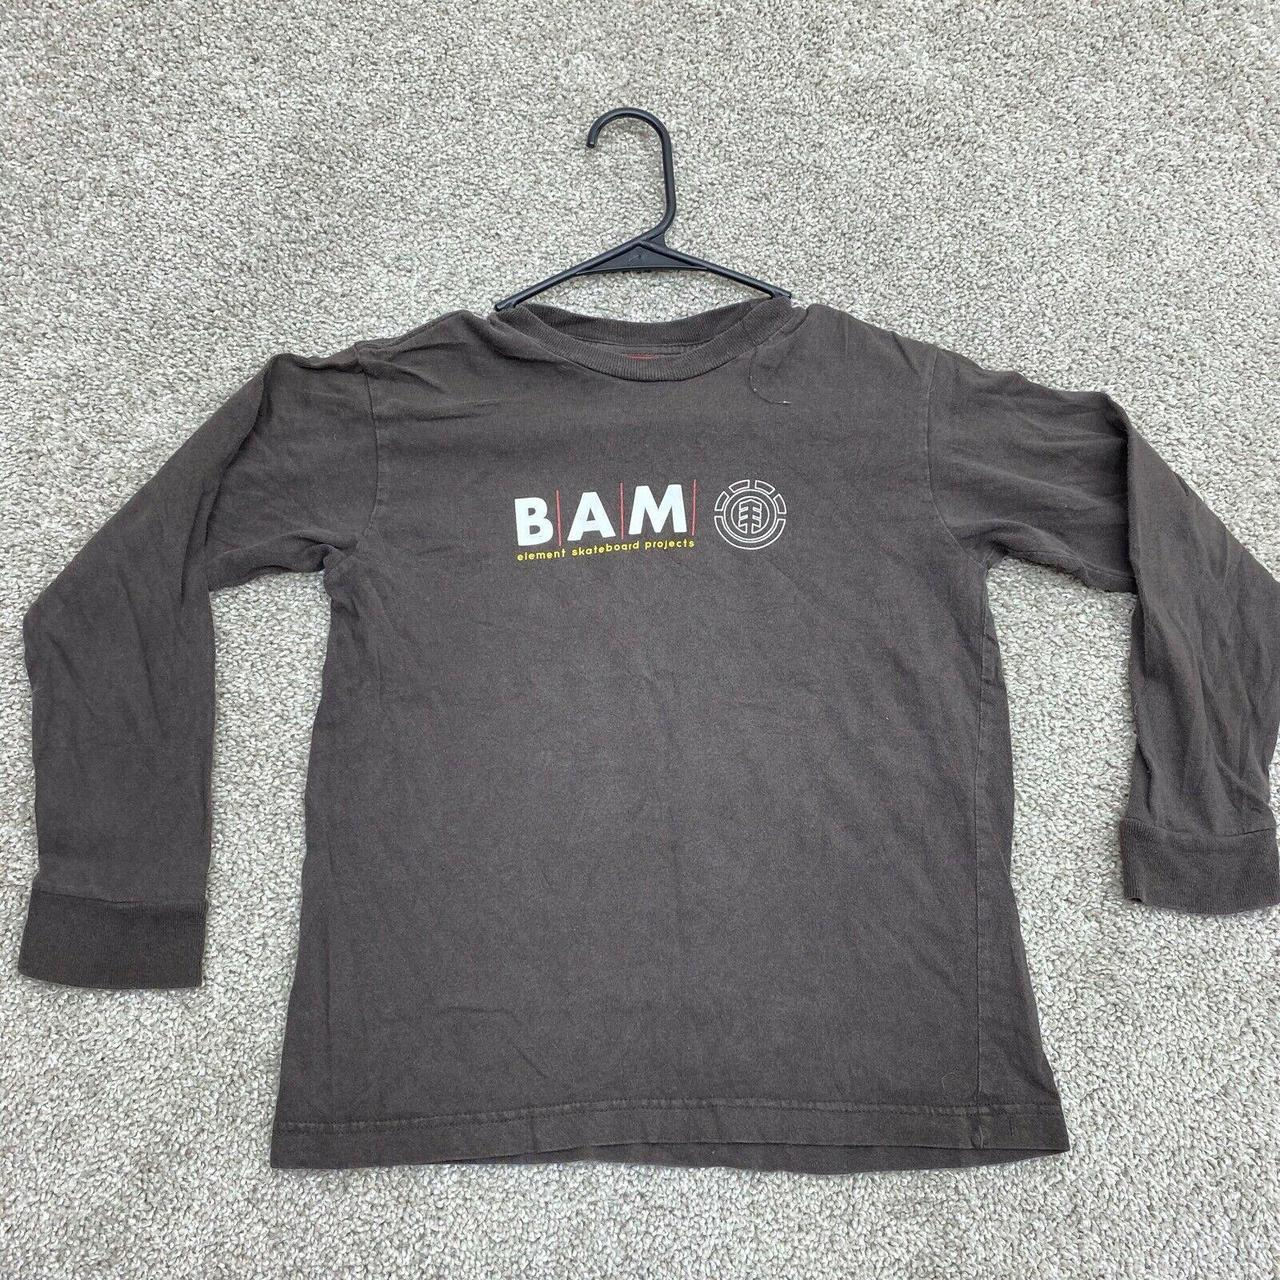 Product Image 1 - Bam Shirt Adult Small Mens